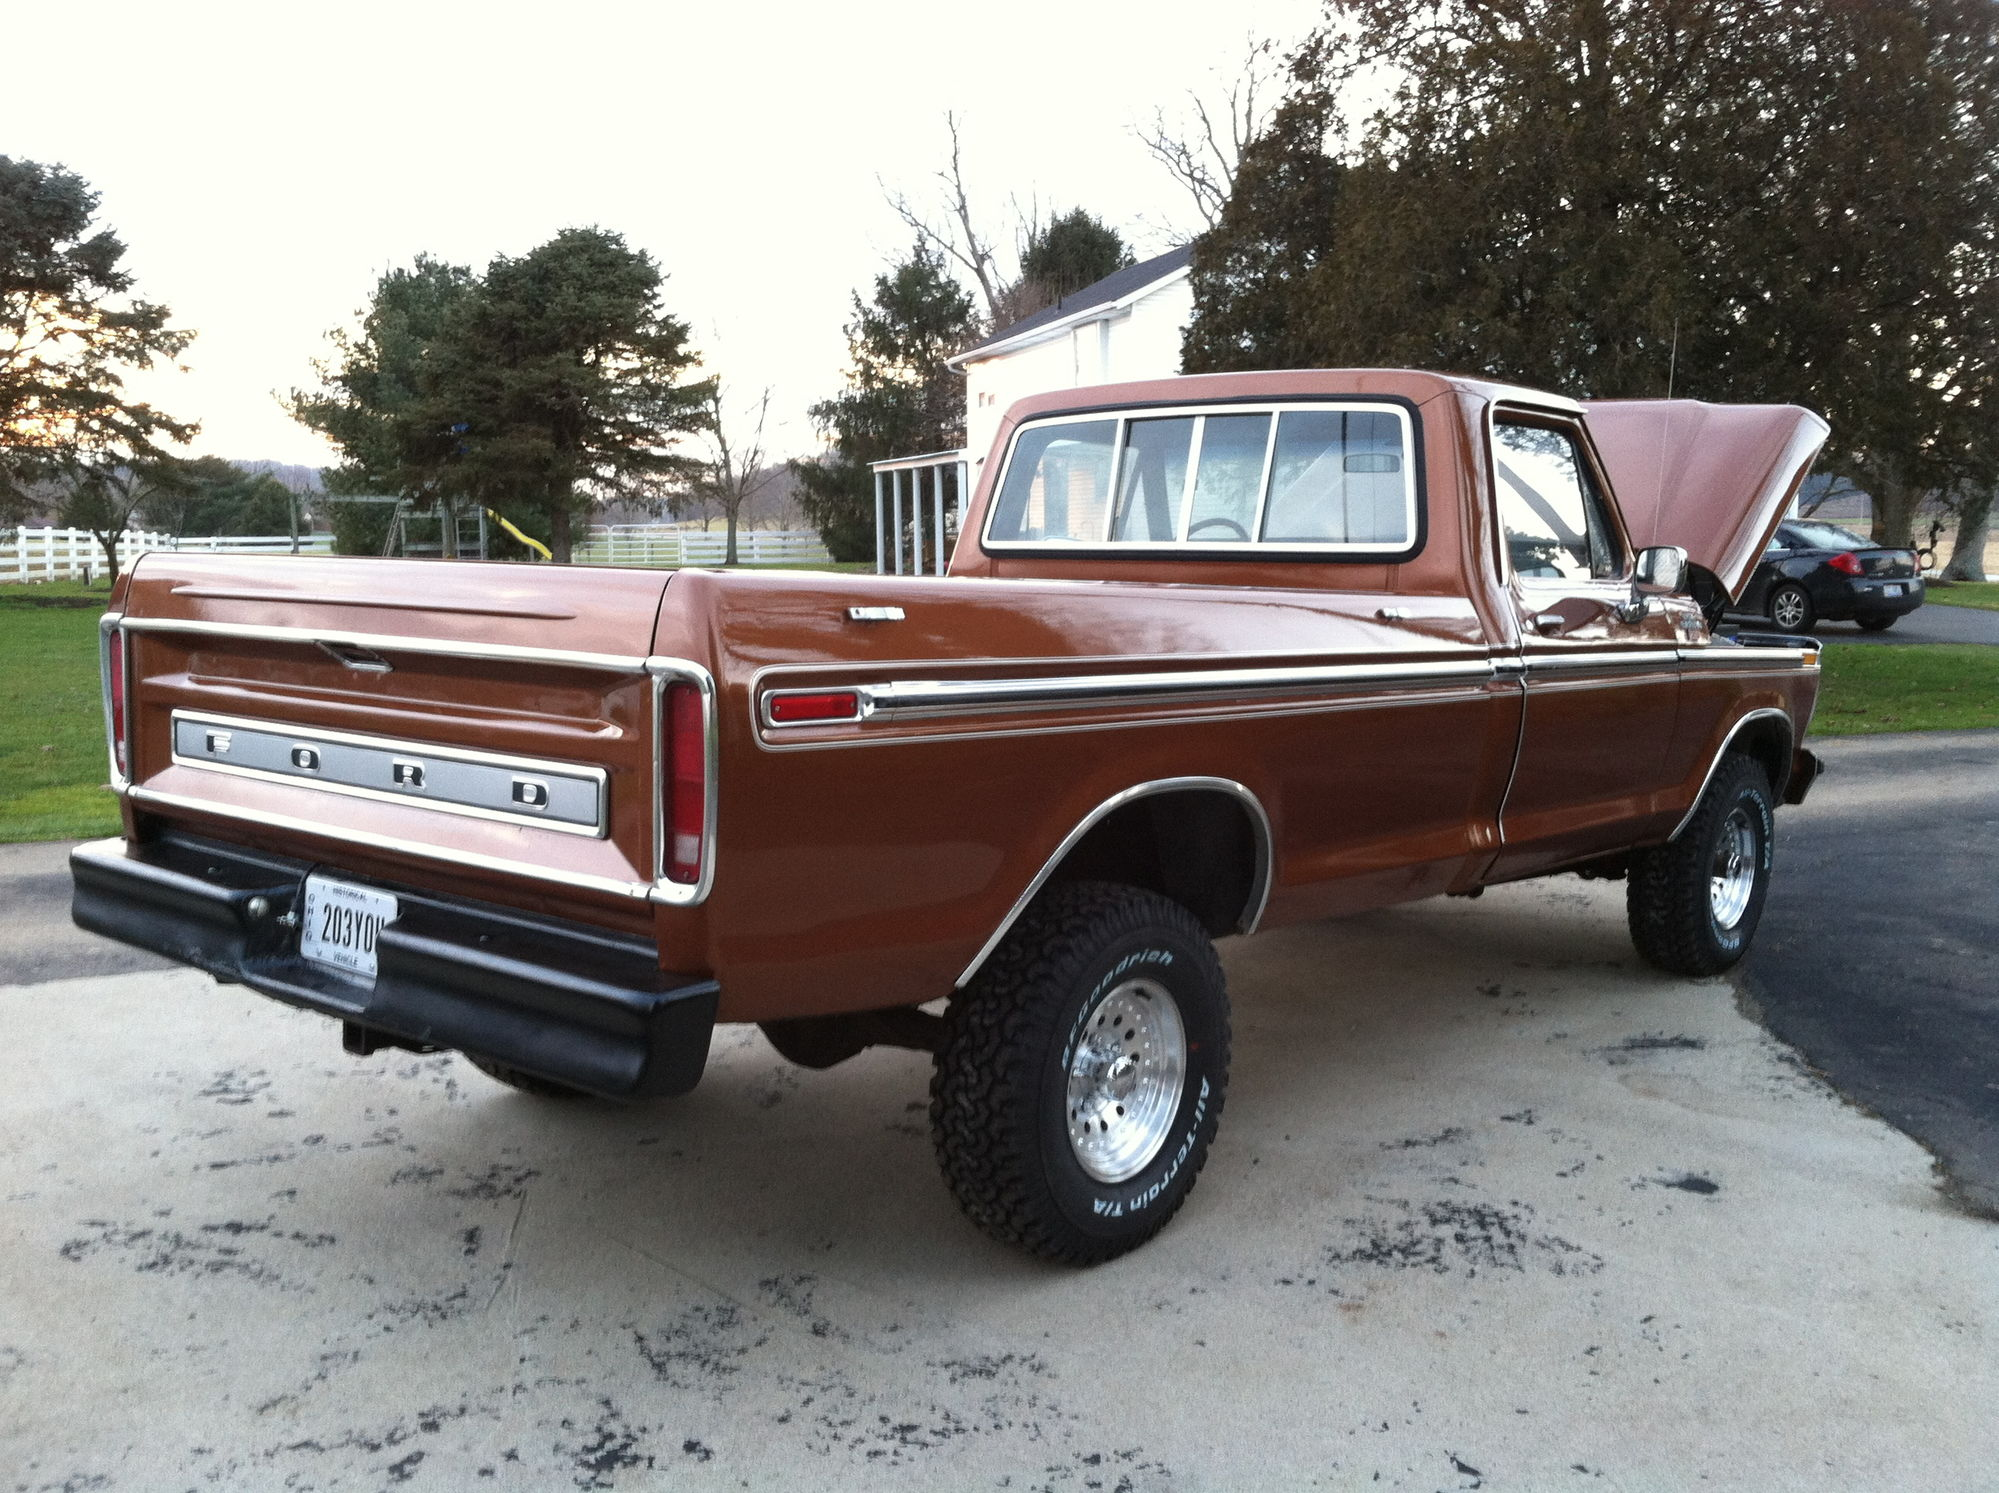 What 4x4 Should I Keep 1978 F150 1977 F250 Ford Truck